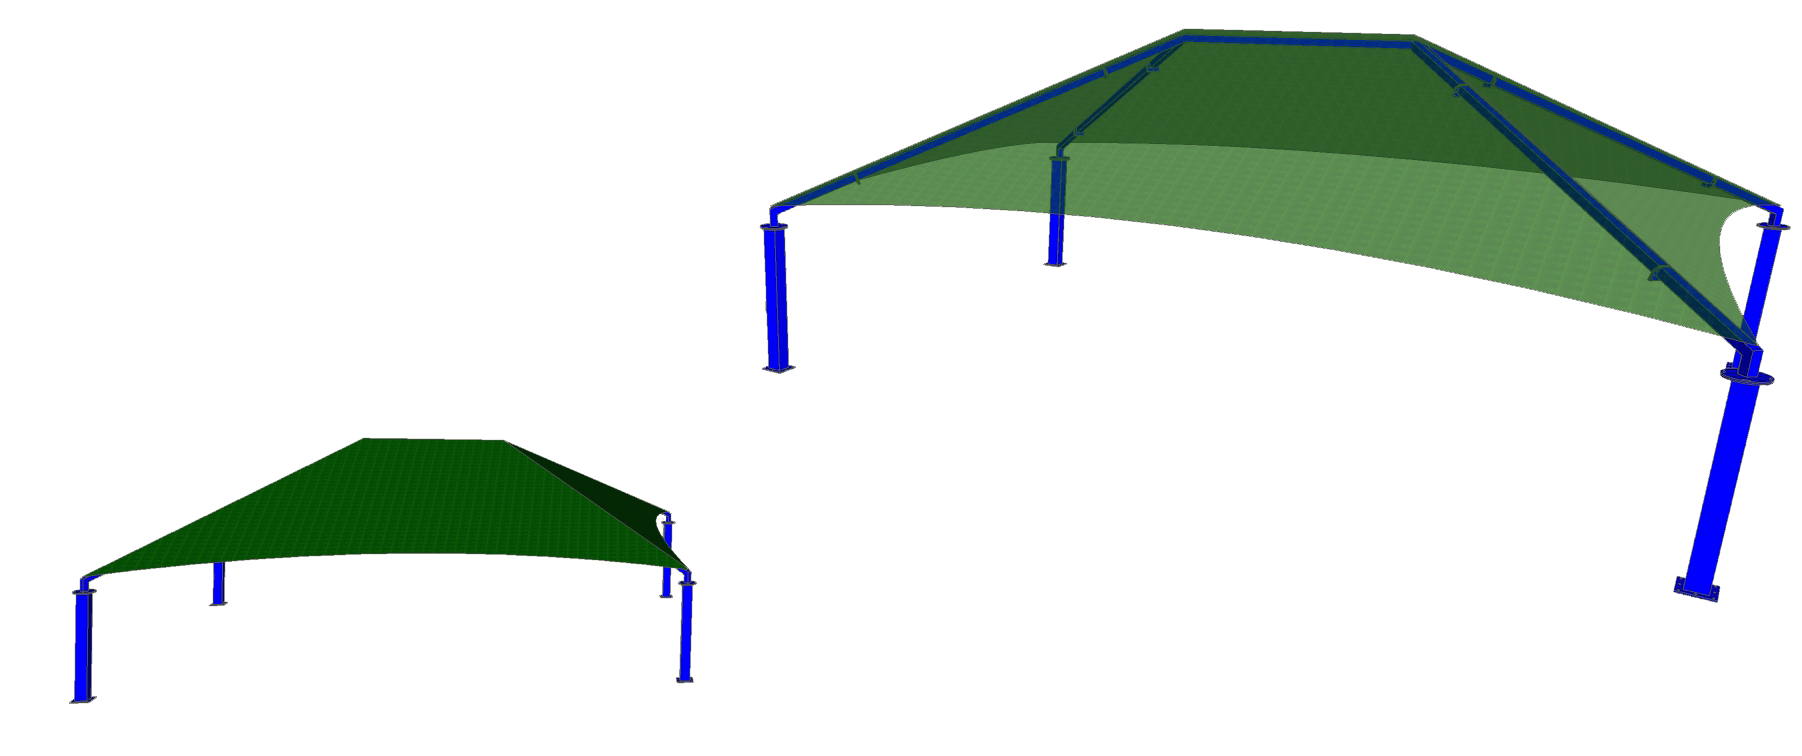 Extreme Span Shade Structure